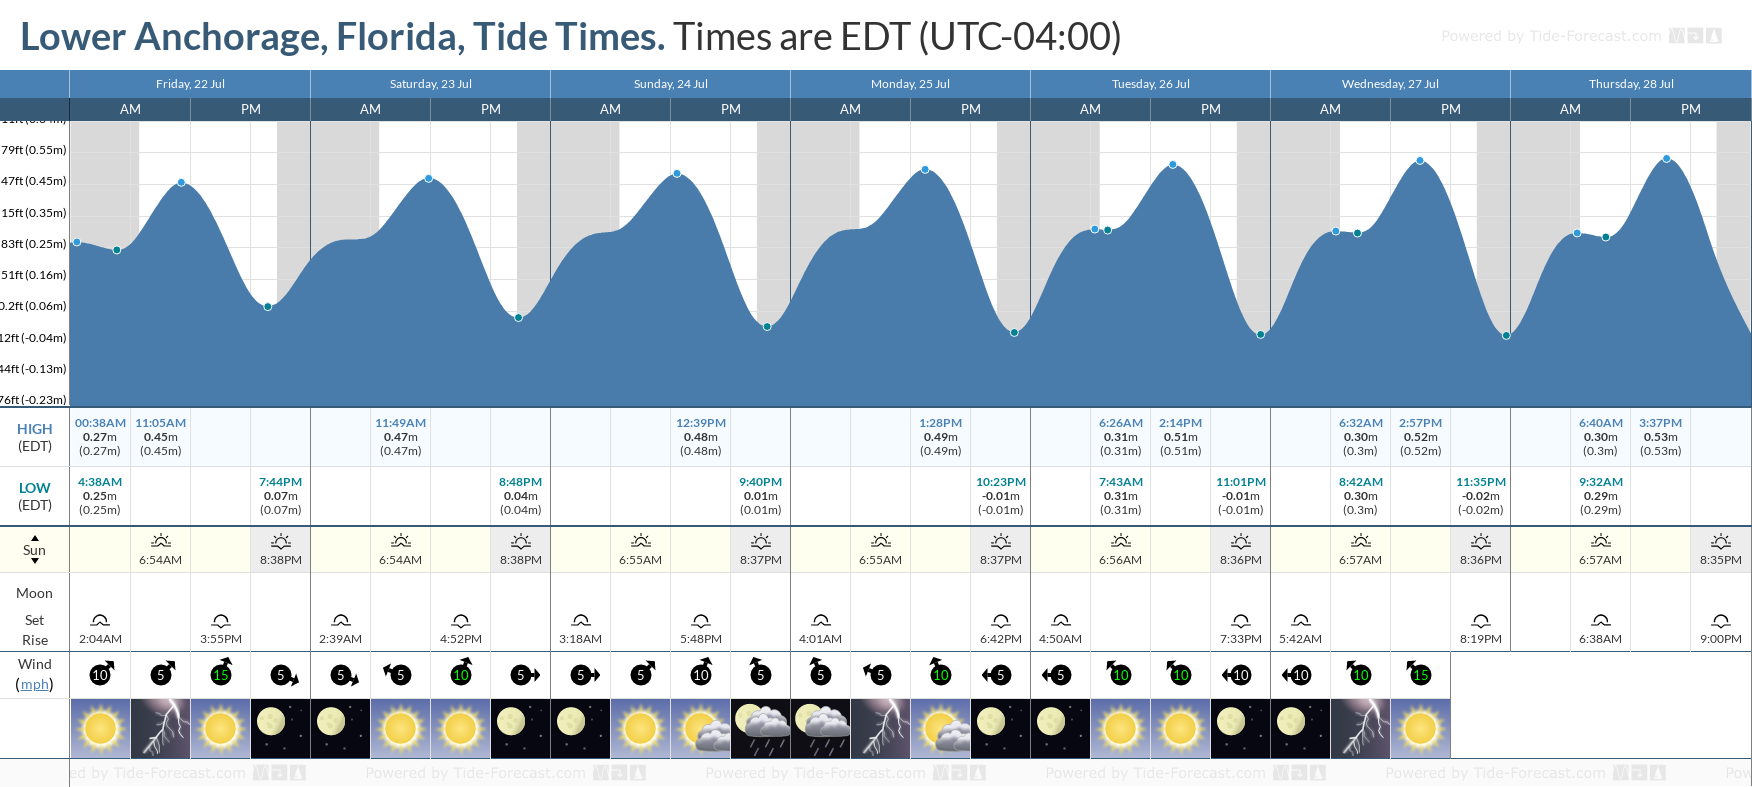 Lower Anchorage, Florida Tide Chart including high and low tide tide times for the next 7 days